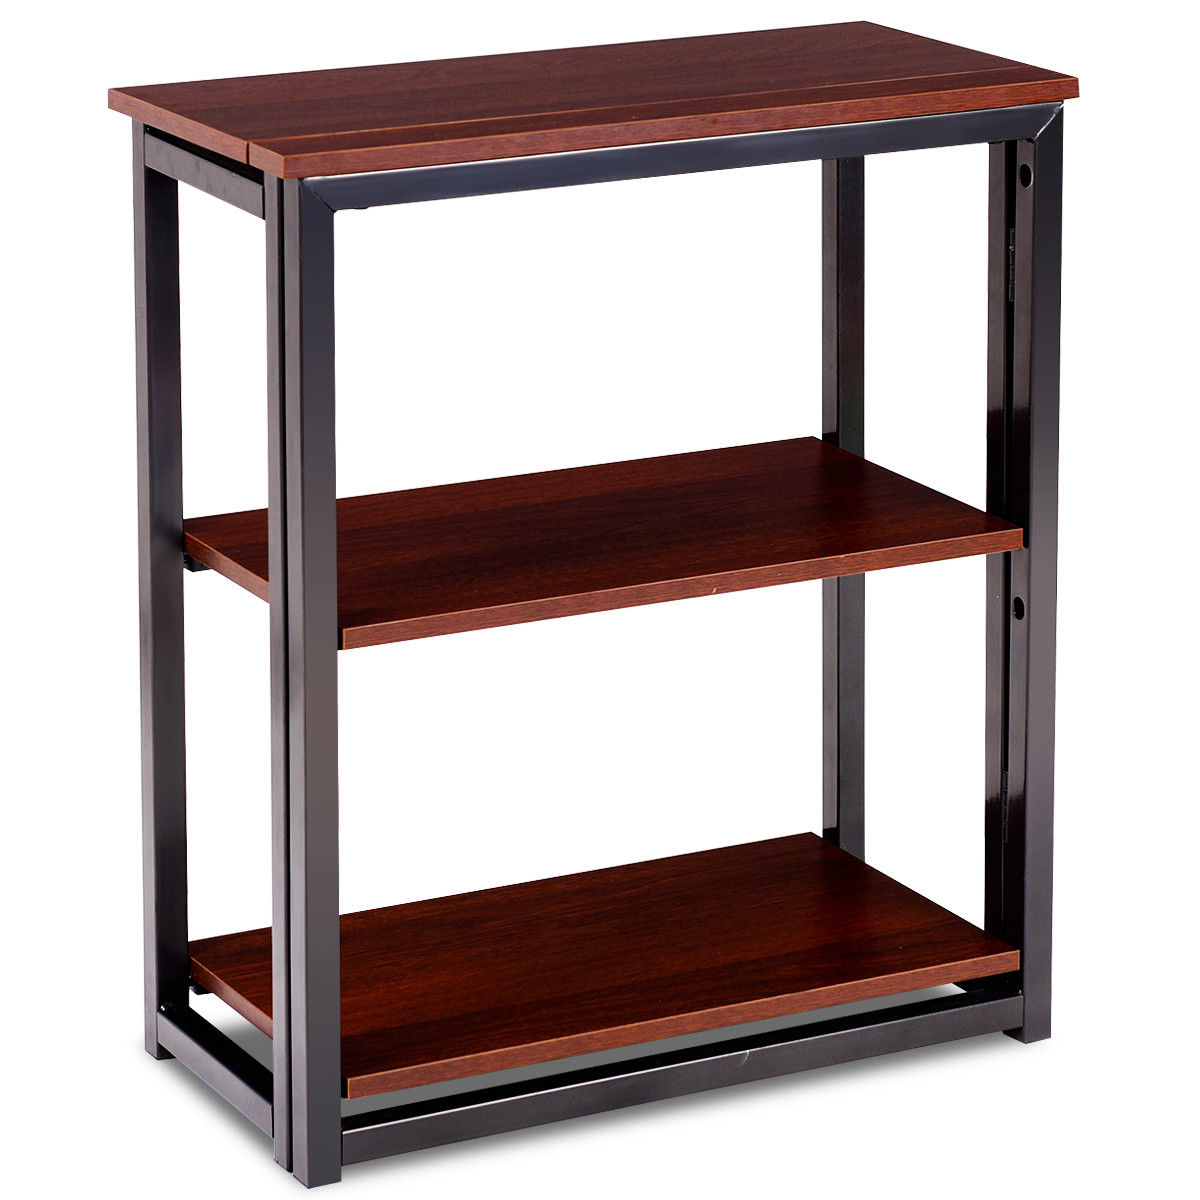 Gymax 3 Tier Folding Ladder Bookcase Shelf Multifunctional Plant Flower Display Stand